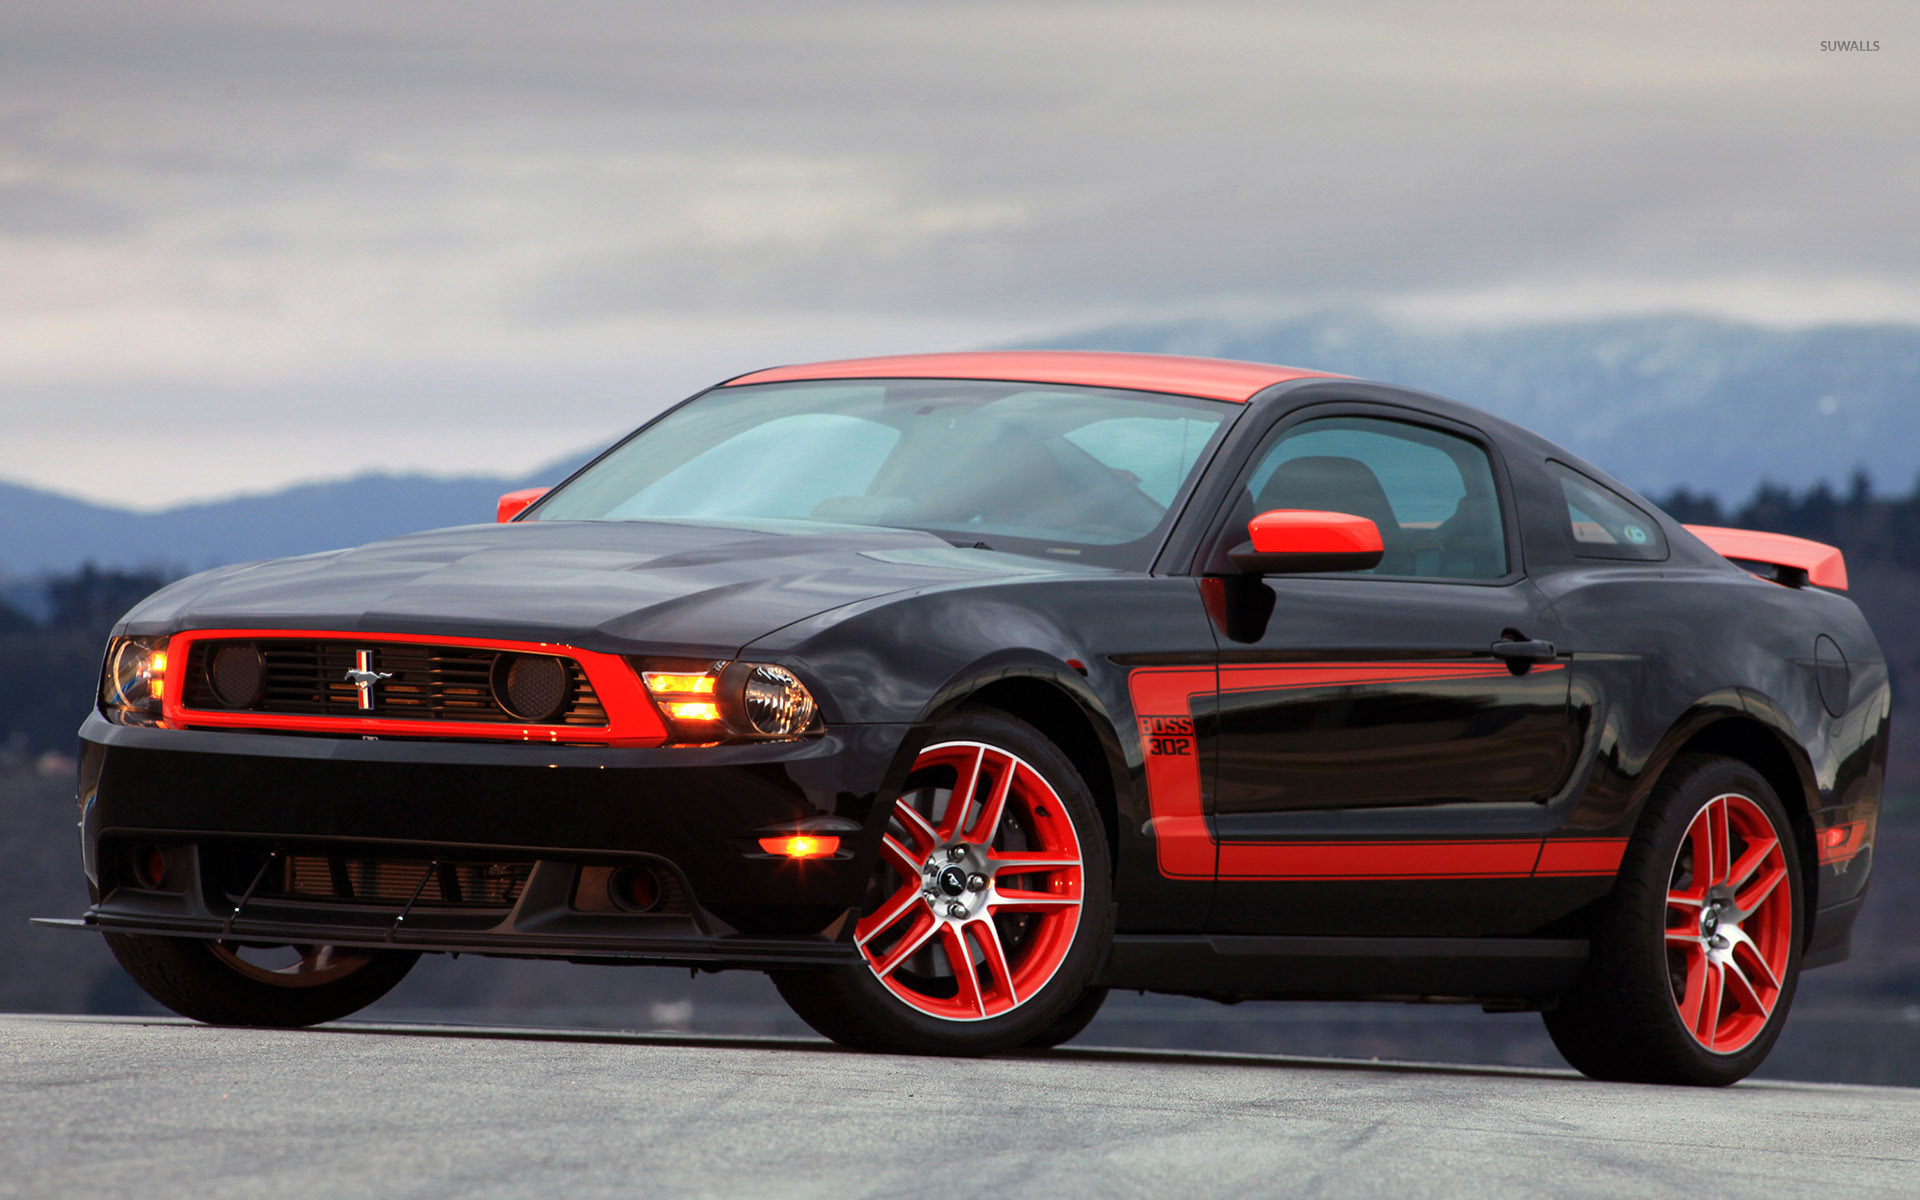 2015 ford mustang boss 302 wallpaper car wallpapers 33583. Black Bedroom Furniture Sets. Home Design Ideas